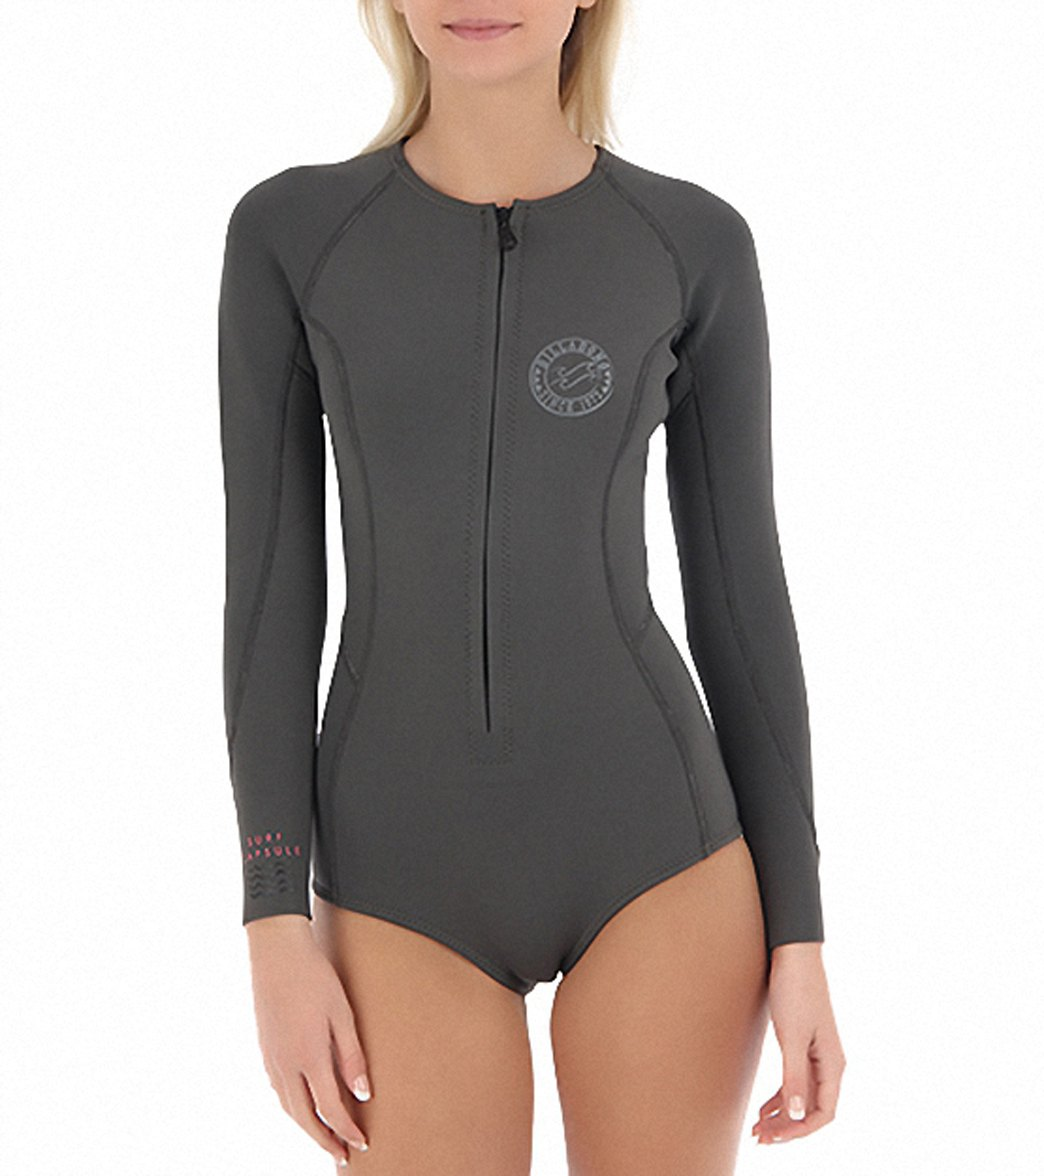 Billabong Women s Surf Capsule 2MM Cheeky Spring Suit at ... 6b1ef72e4